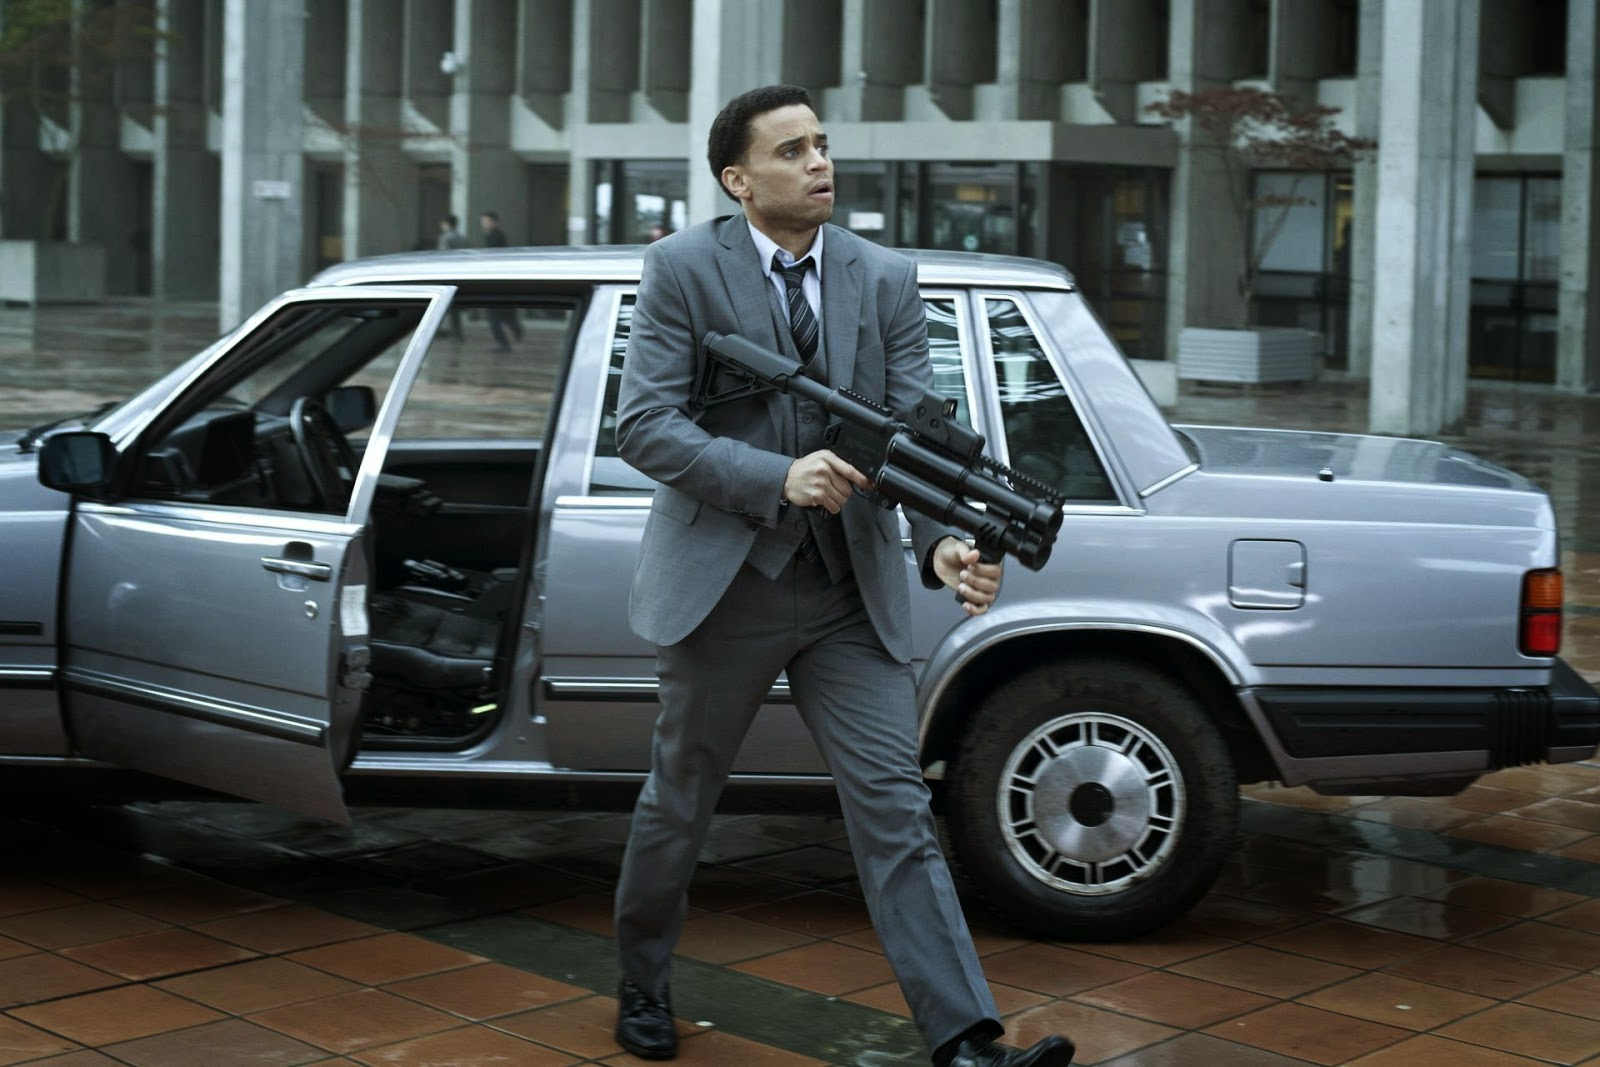 Underworld Awakening:  Michael Ealy | A Constantly Racing Mind